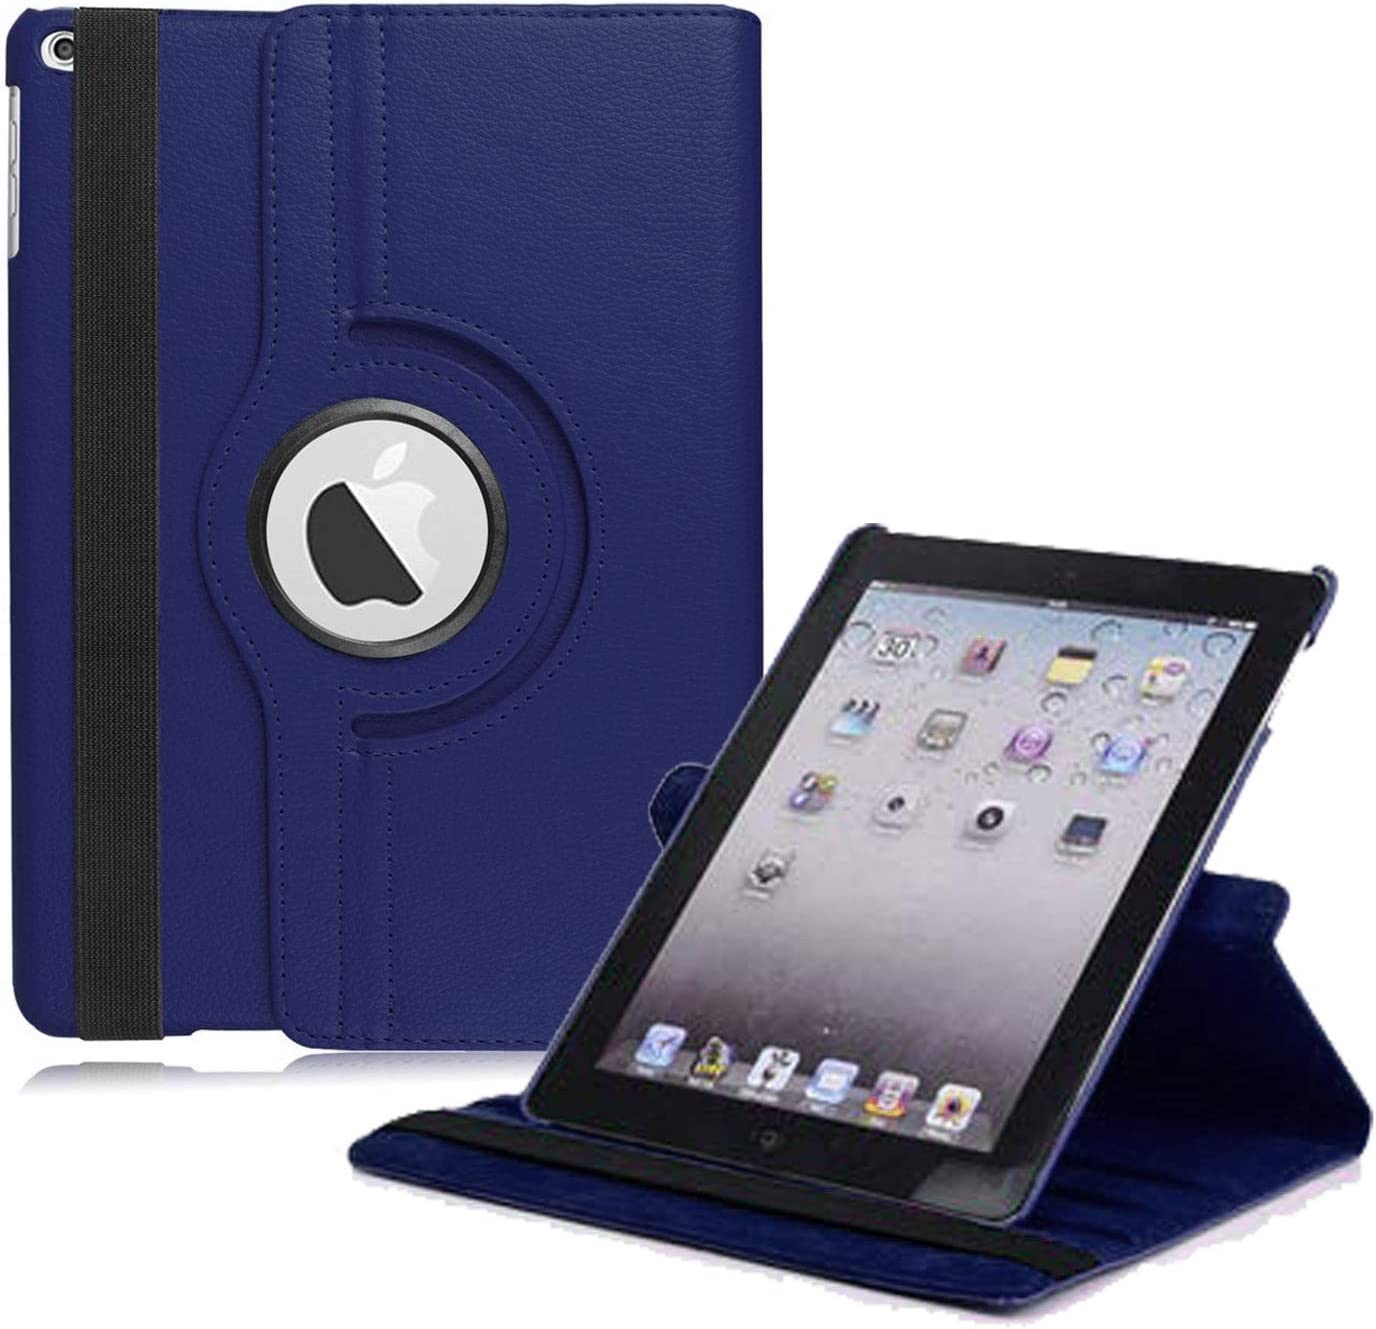 "New iPad 2017 9.7"" / iPad Air 2 Leather Case,360 Degree Rotating Stand Smart Cover with Auto Sleep Wake for Apple iPad Air or New iPad 9.7 Inch 2017 Tablet (Navy Blue)"